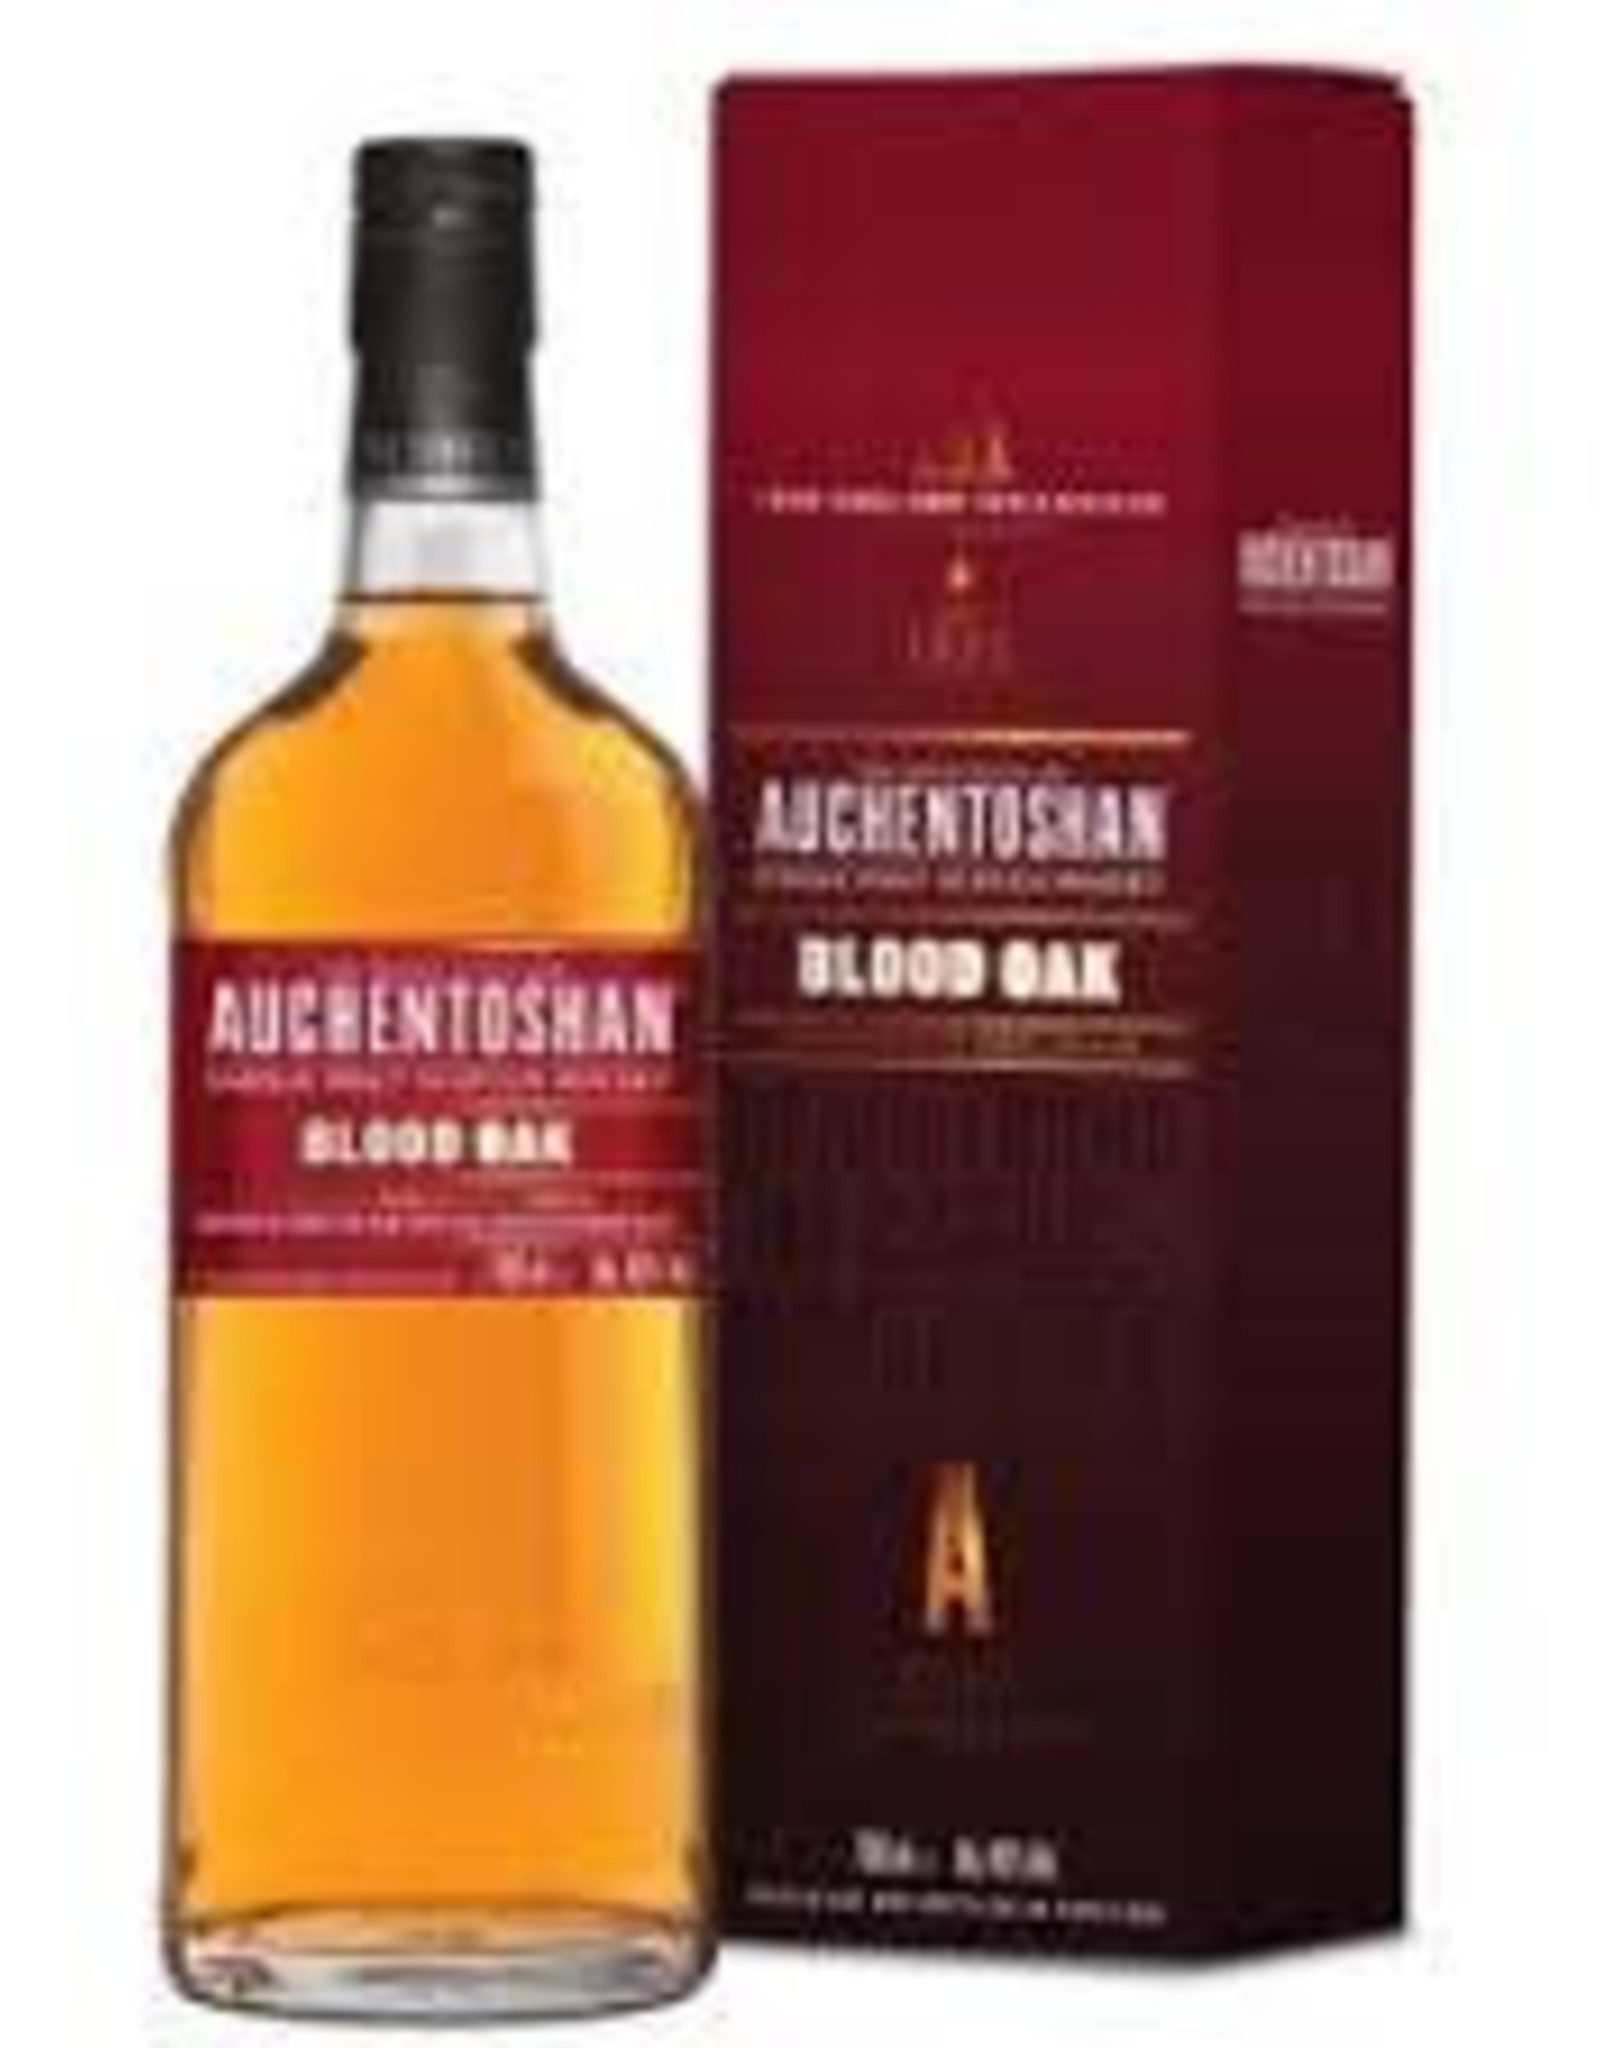 Auchentoshan Blood oak, Whisky, 46%, 700 ml